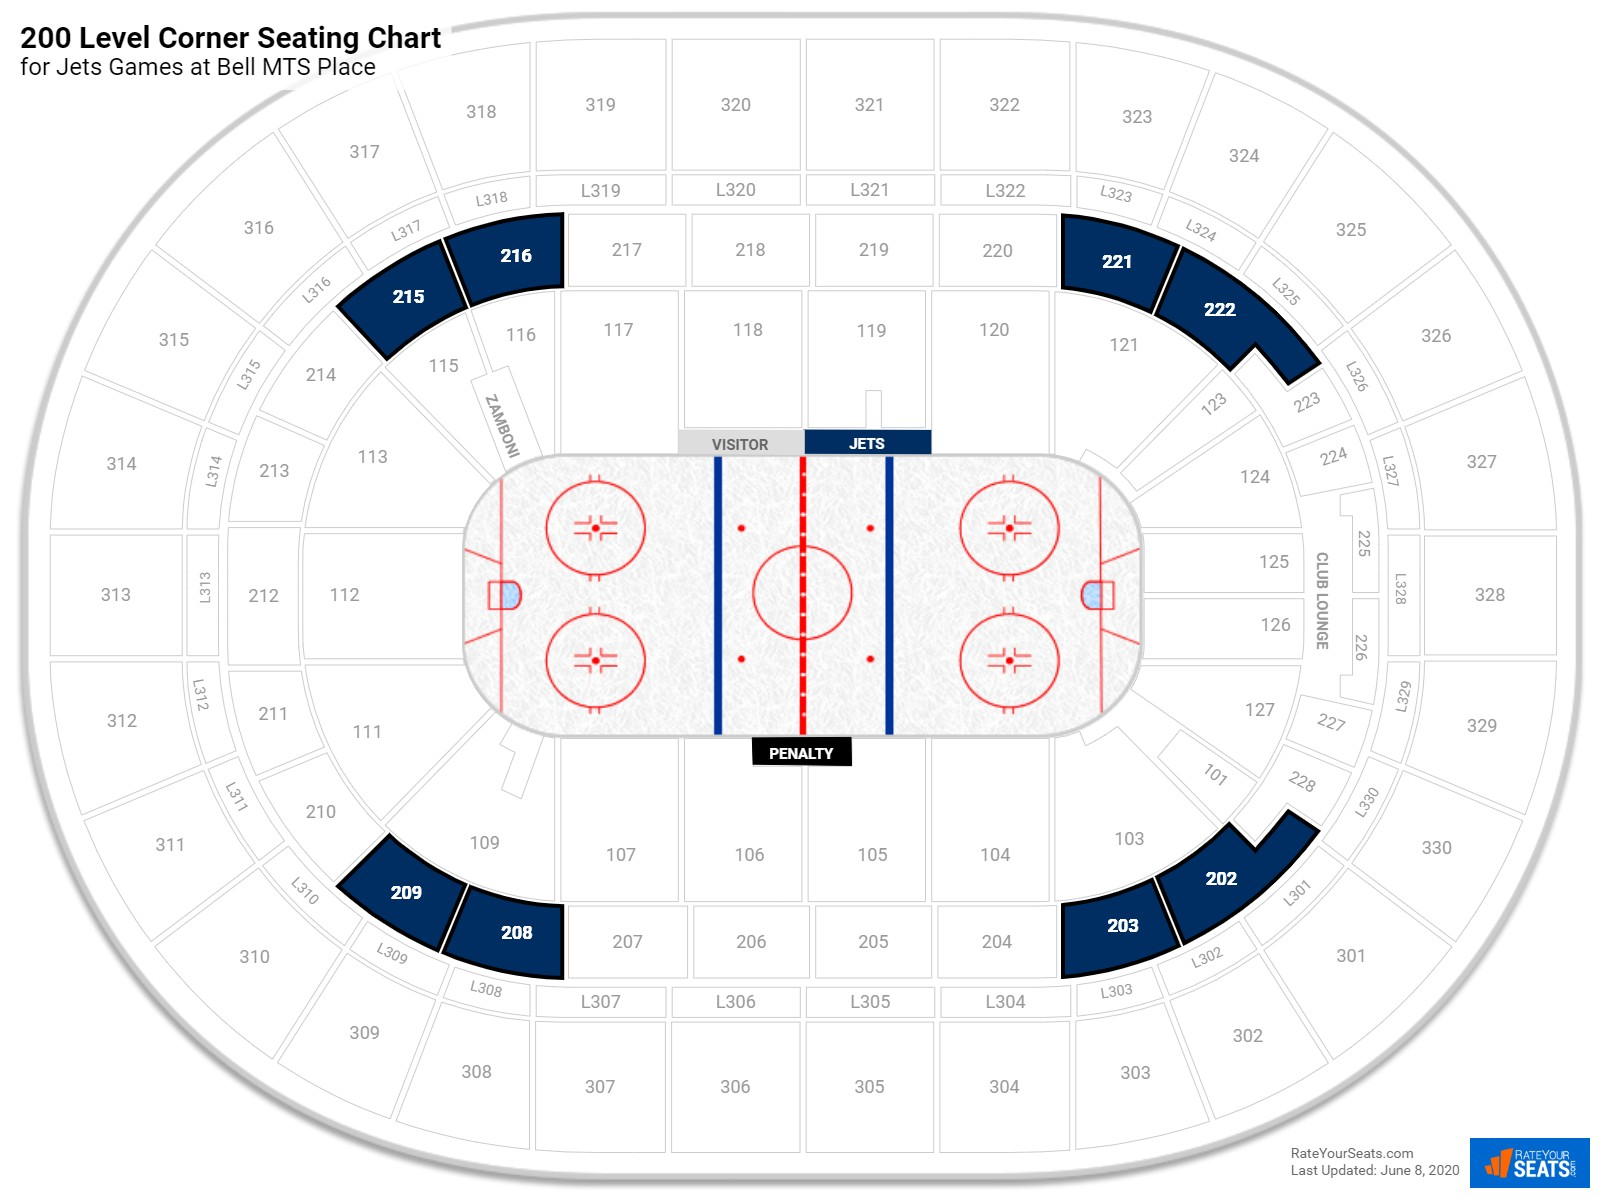 MTS Centre 200 Level Corner seating chart